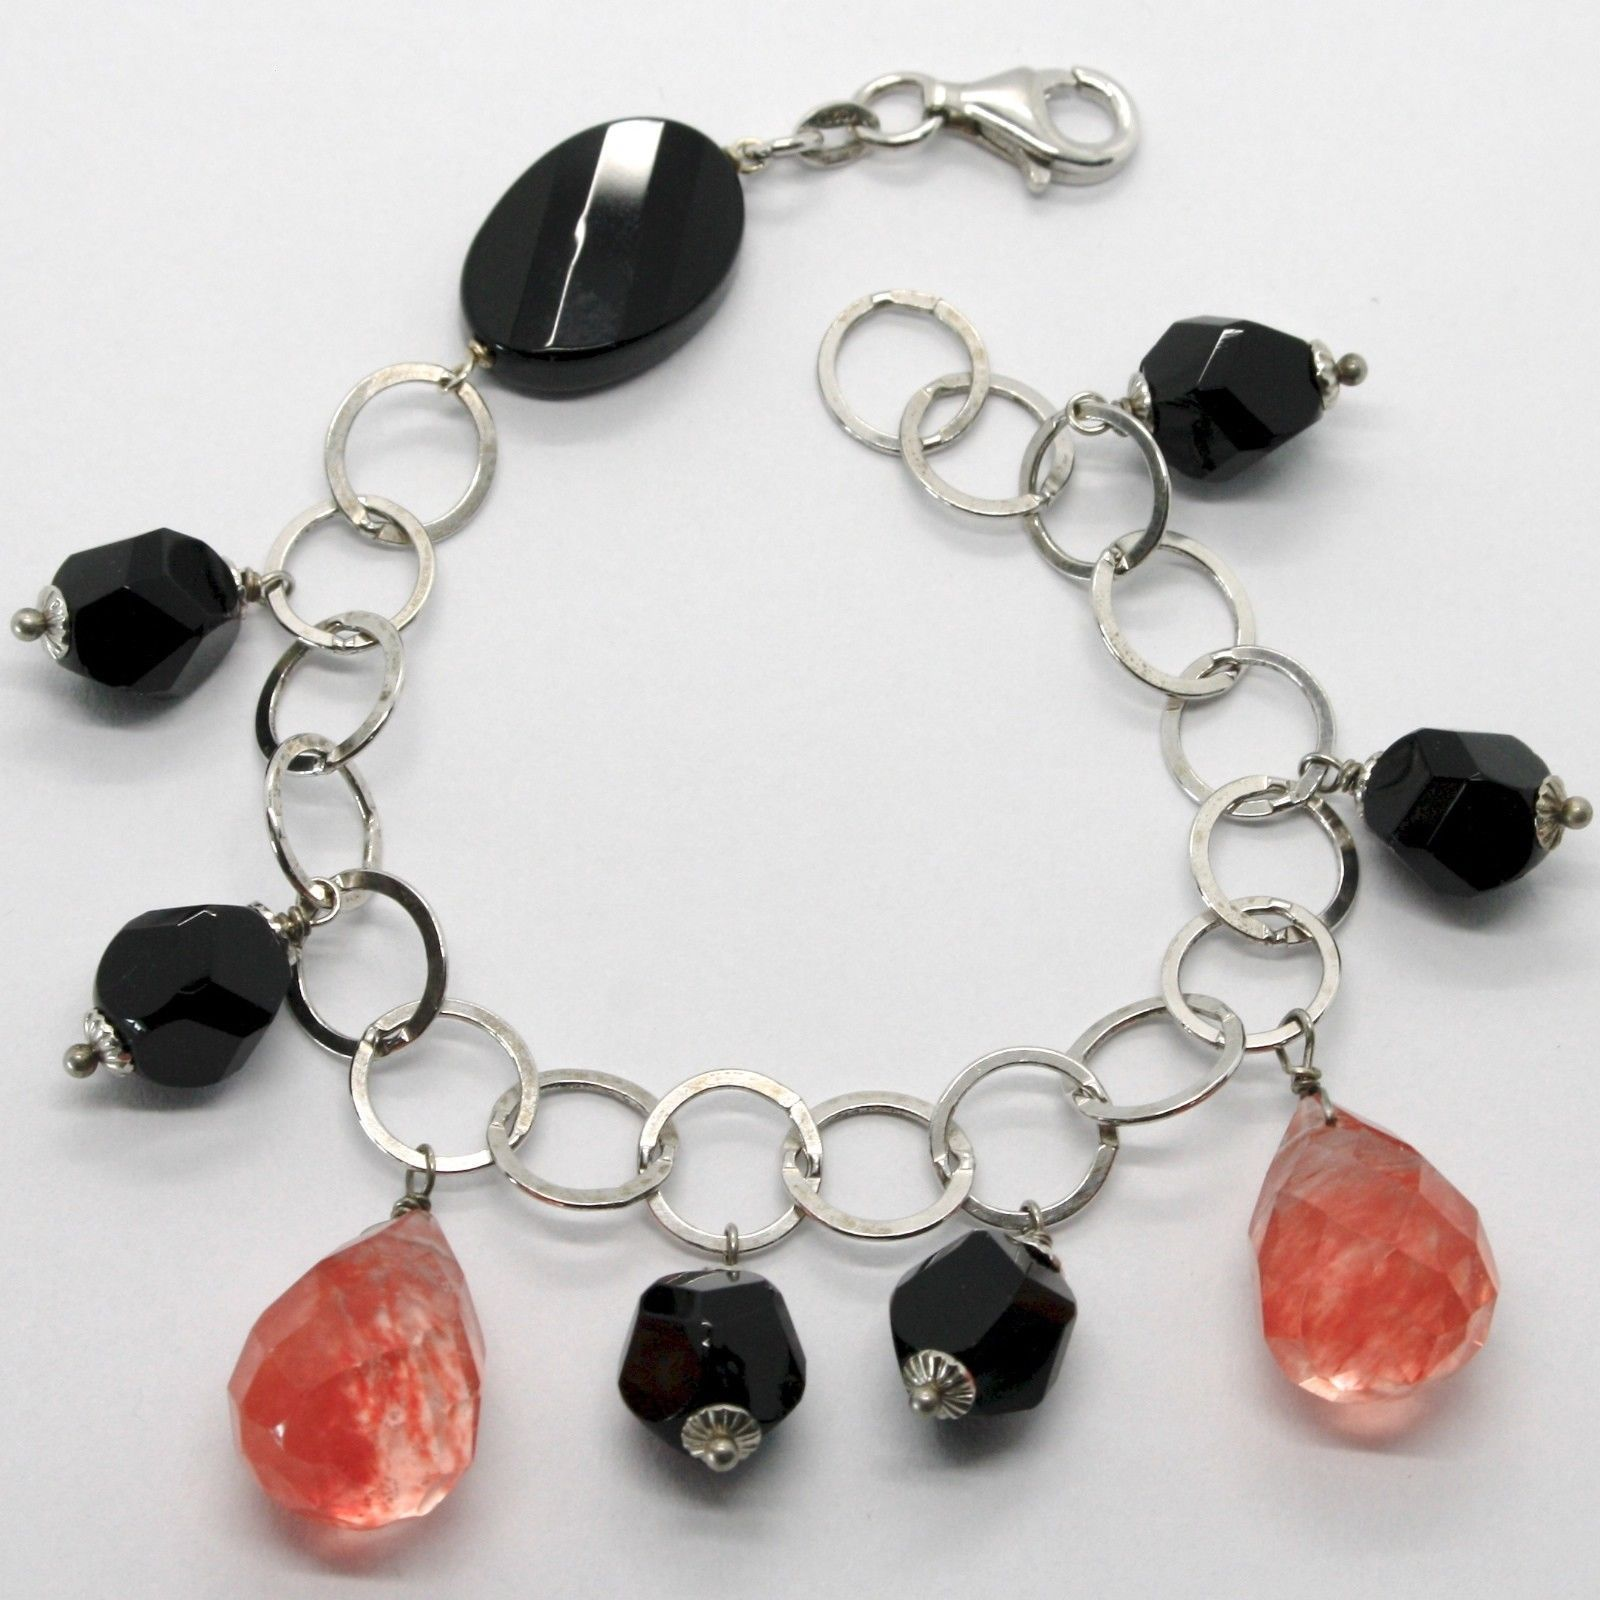 SILVER 925 BRACELET RHODIUM WITH ONYX OVAL FACETED AND QUARZZO CHERRY